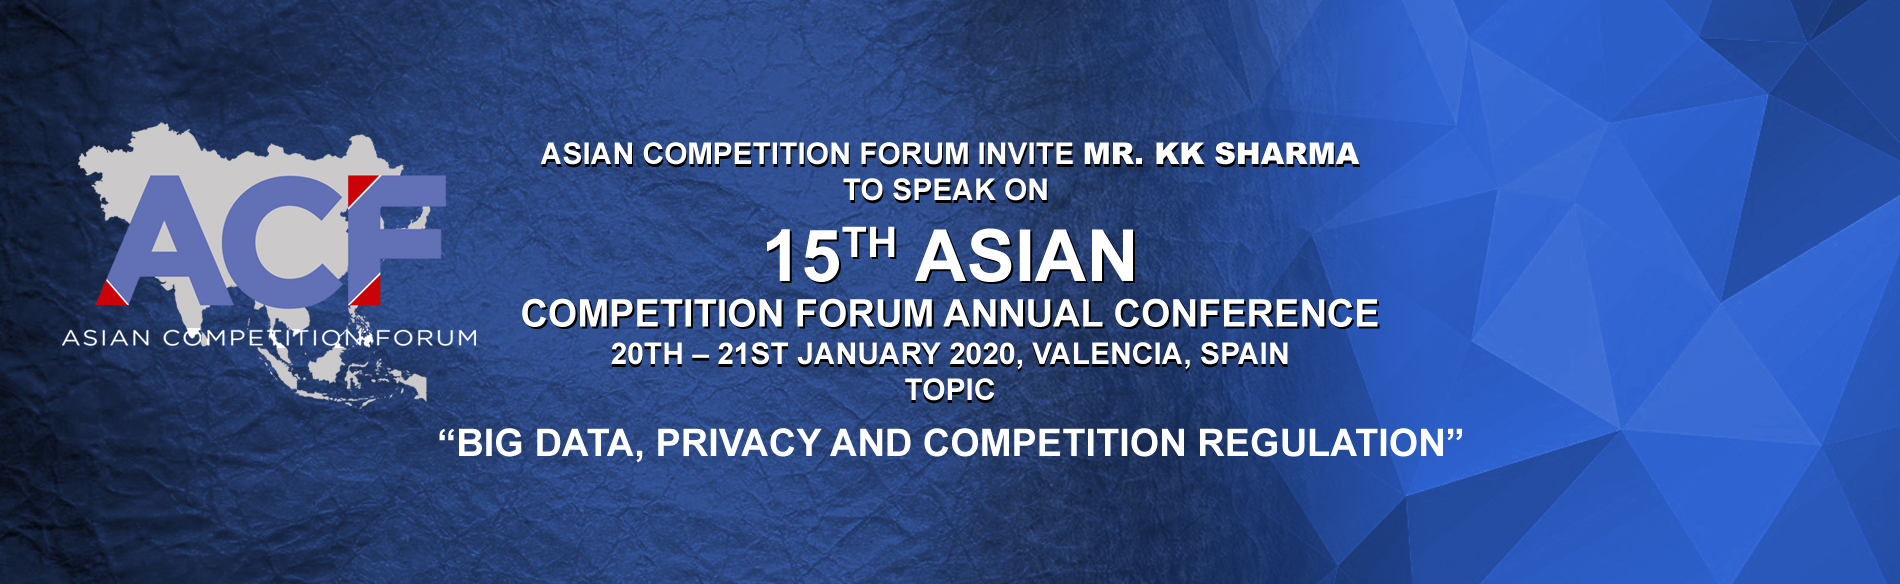 Invitation to Speak at 15th Asian Competition Forum Annual Conference: 20th – 21st January 2020, Valencia, Spain